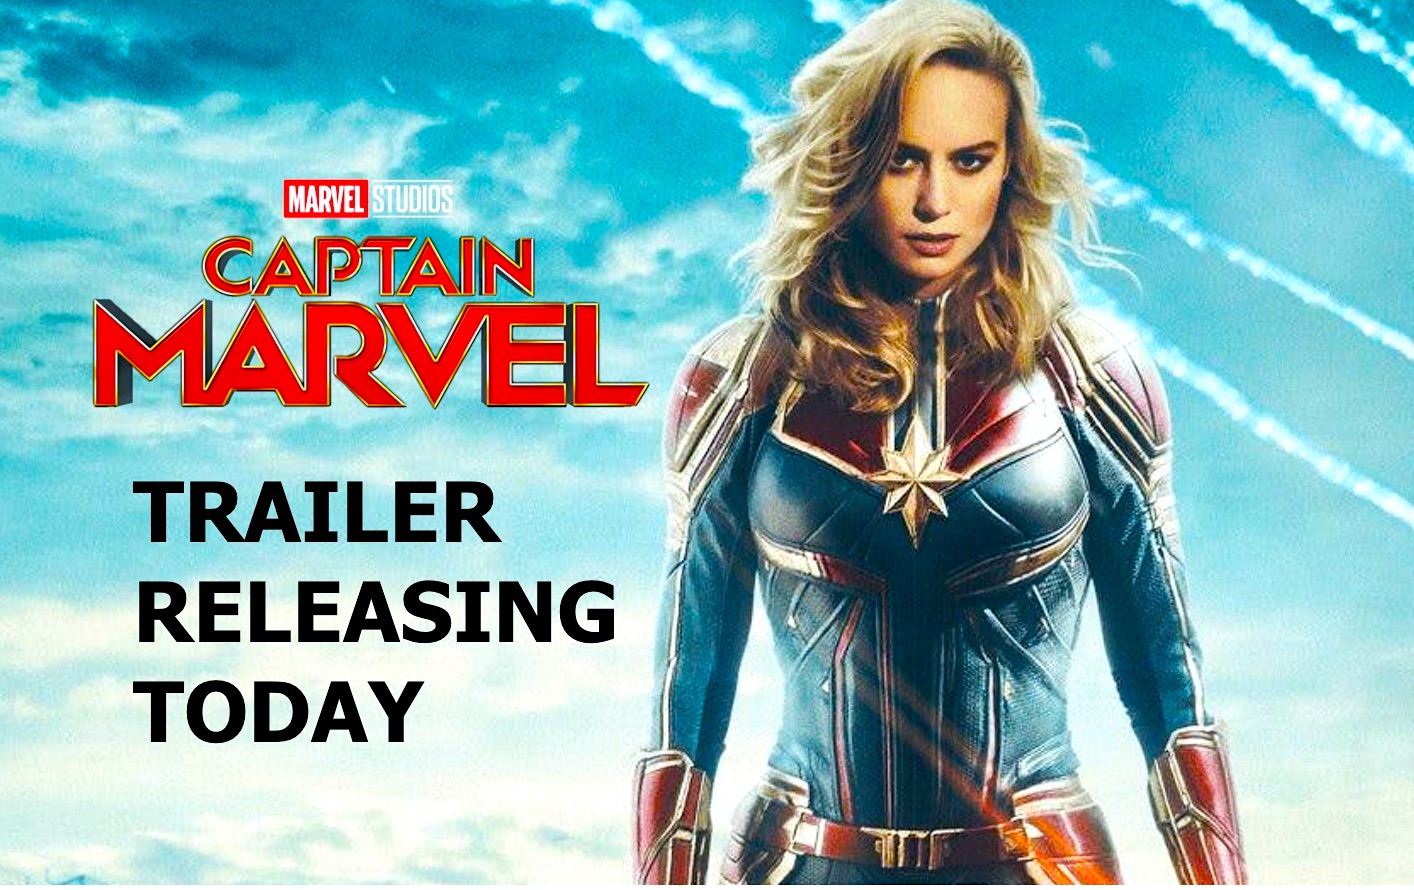 What Are Captain Marvel's Powers? Movie's New Trailer Gives Some Insight